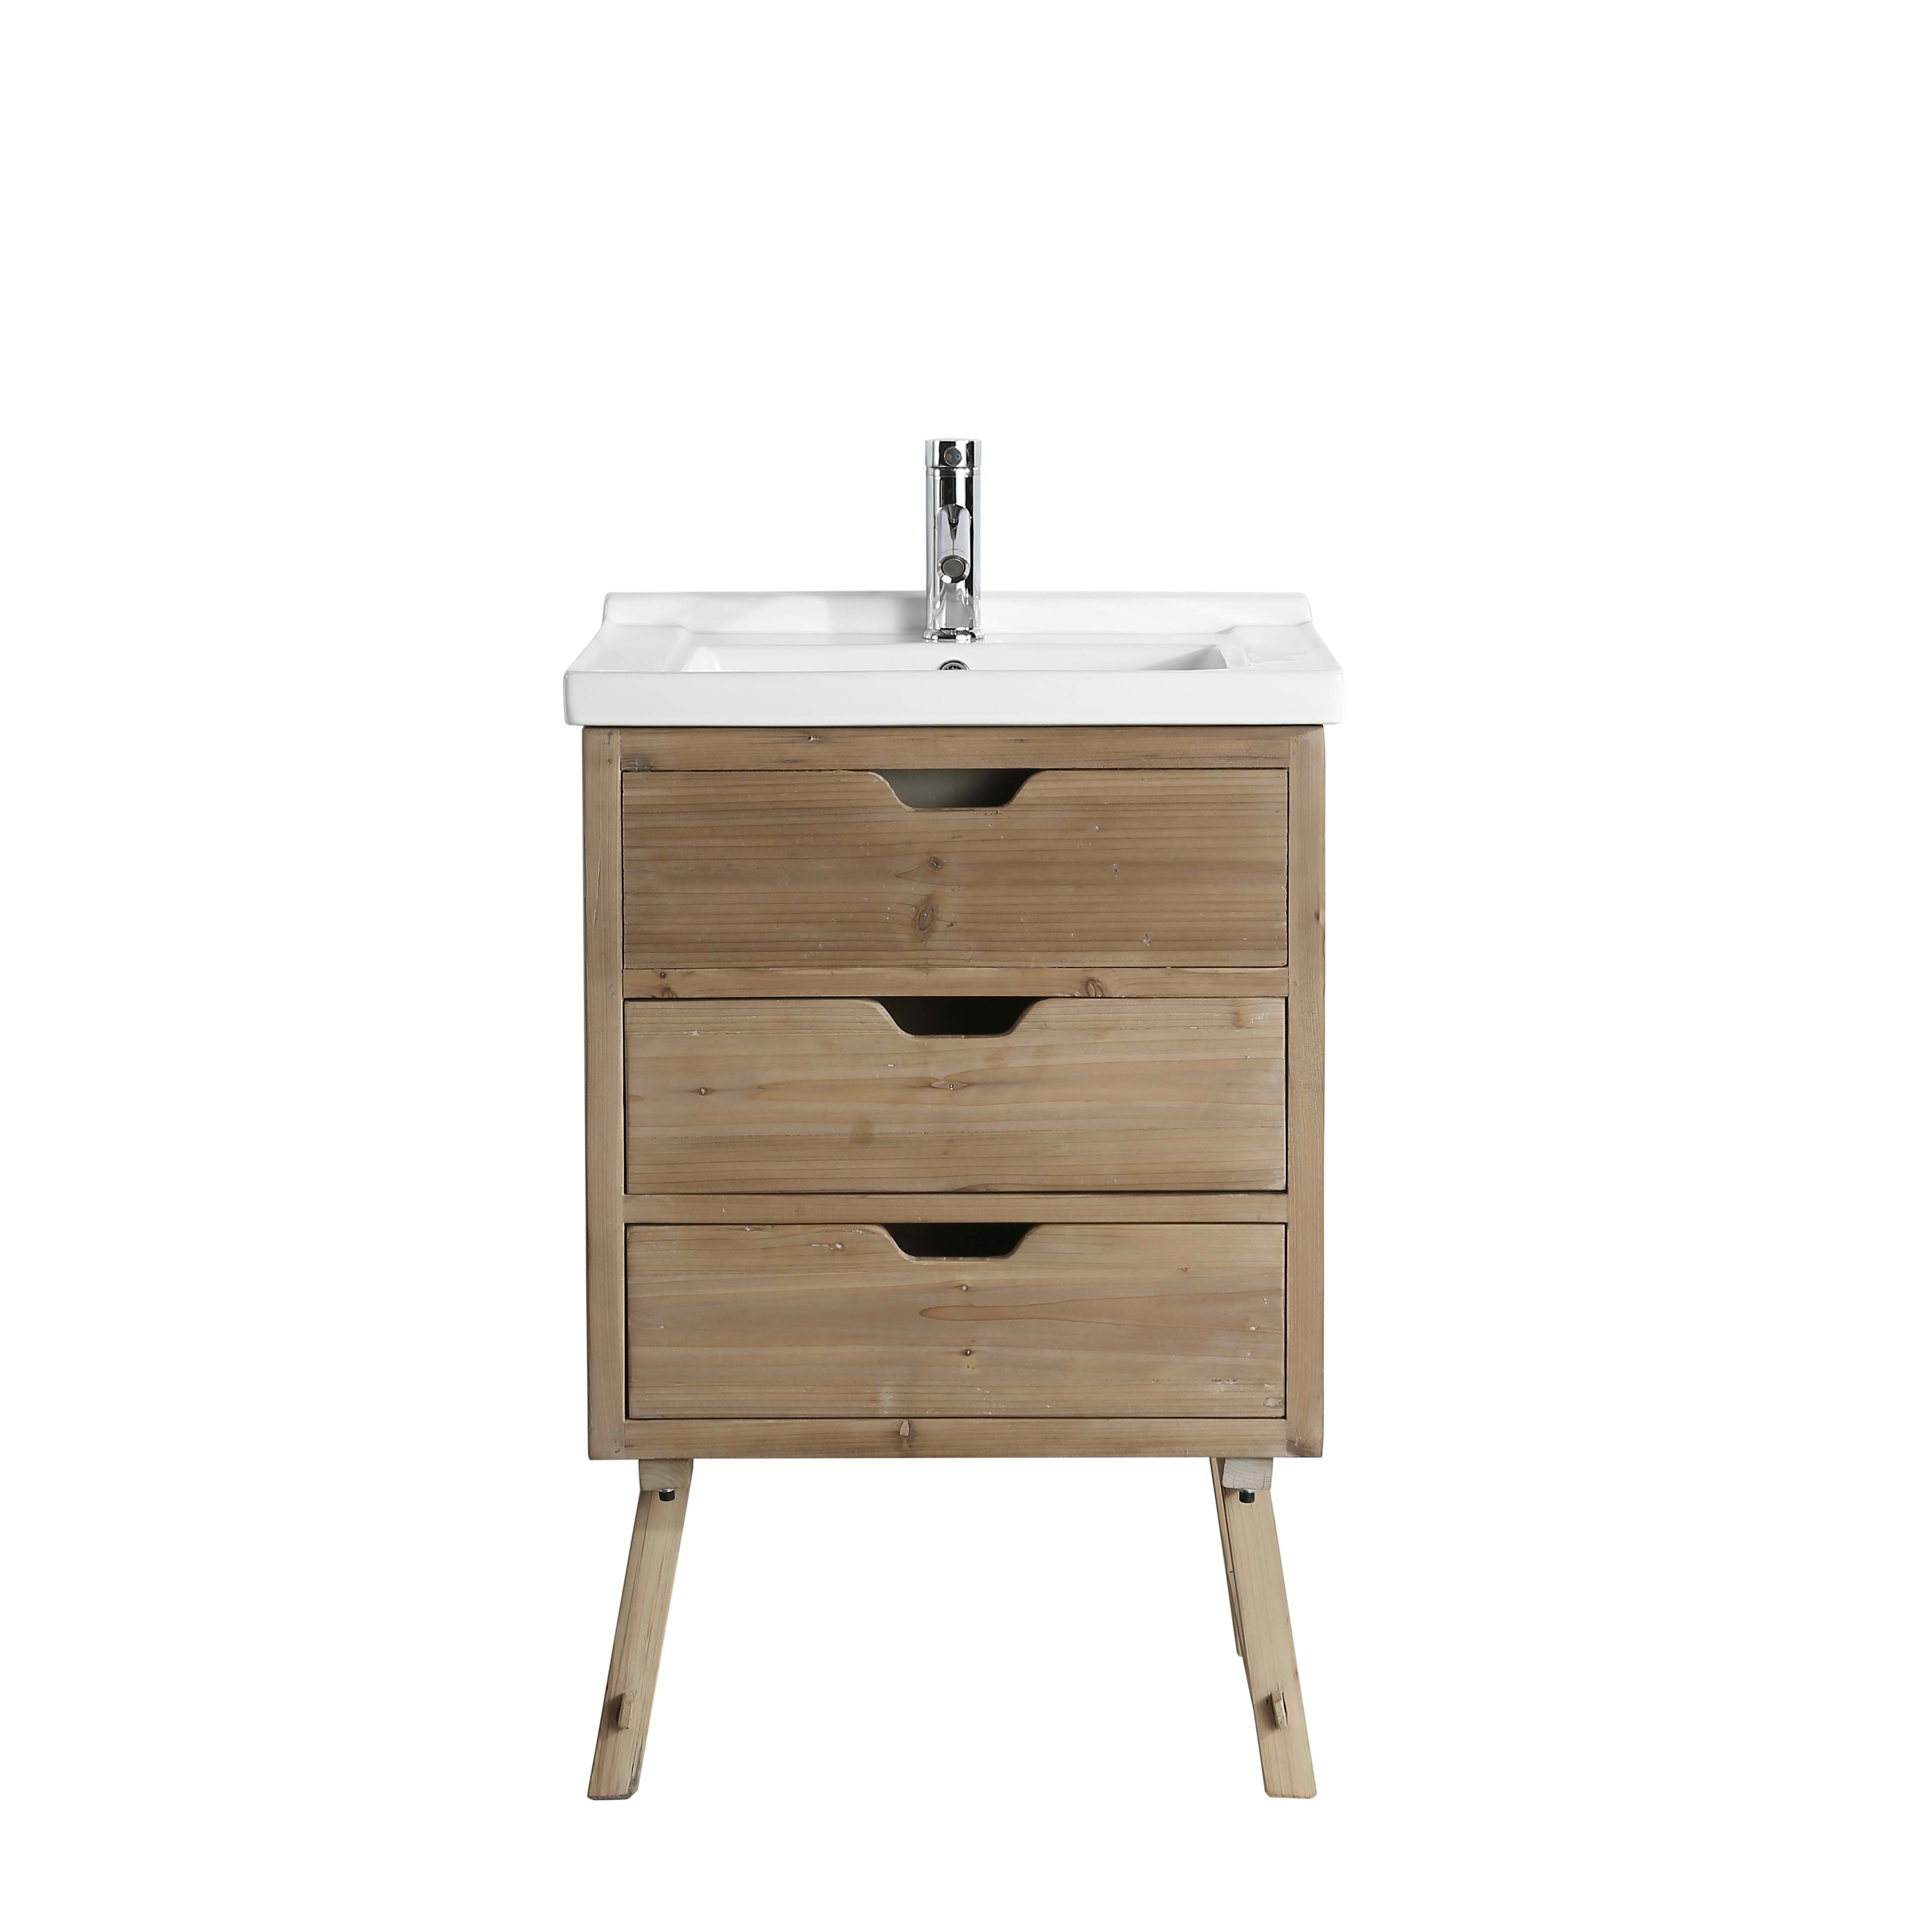 "Rustic 24"" Single Sink Bathroom Vanity with Porcelain Integrated Counterop in Natural Distressed Wood Finish"